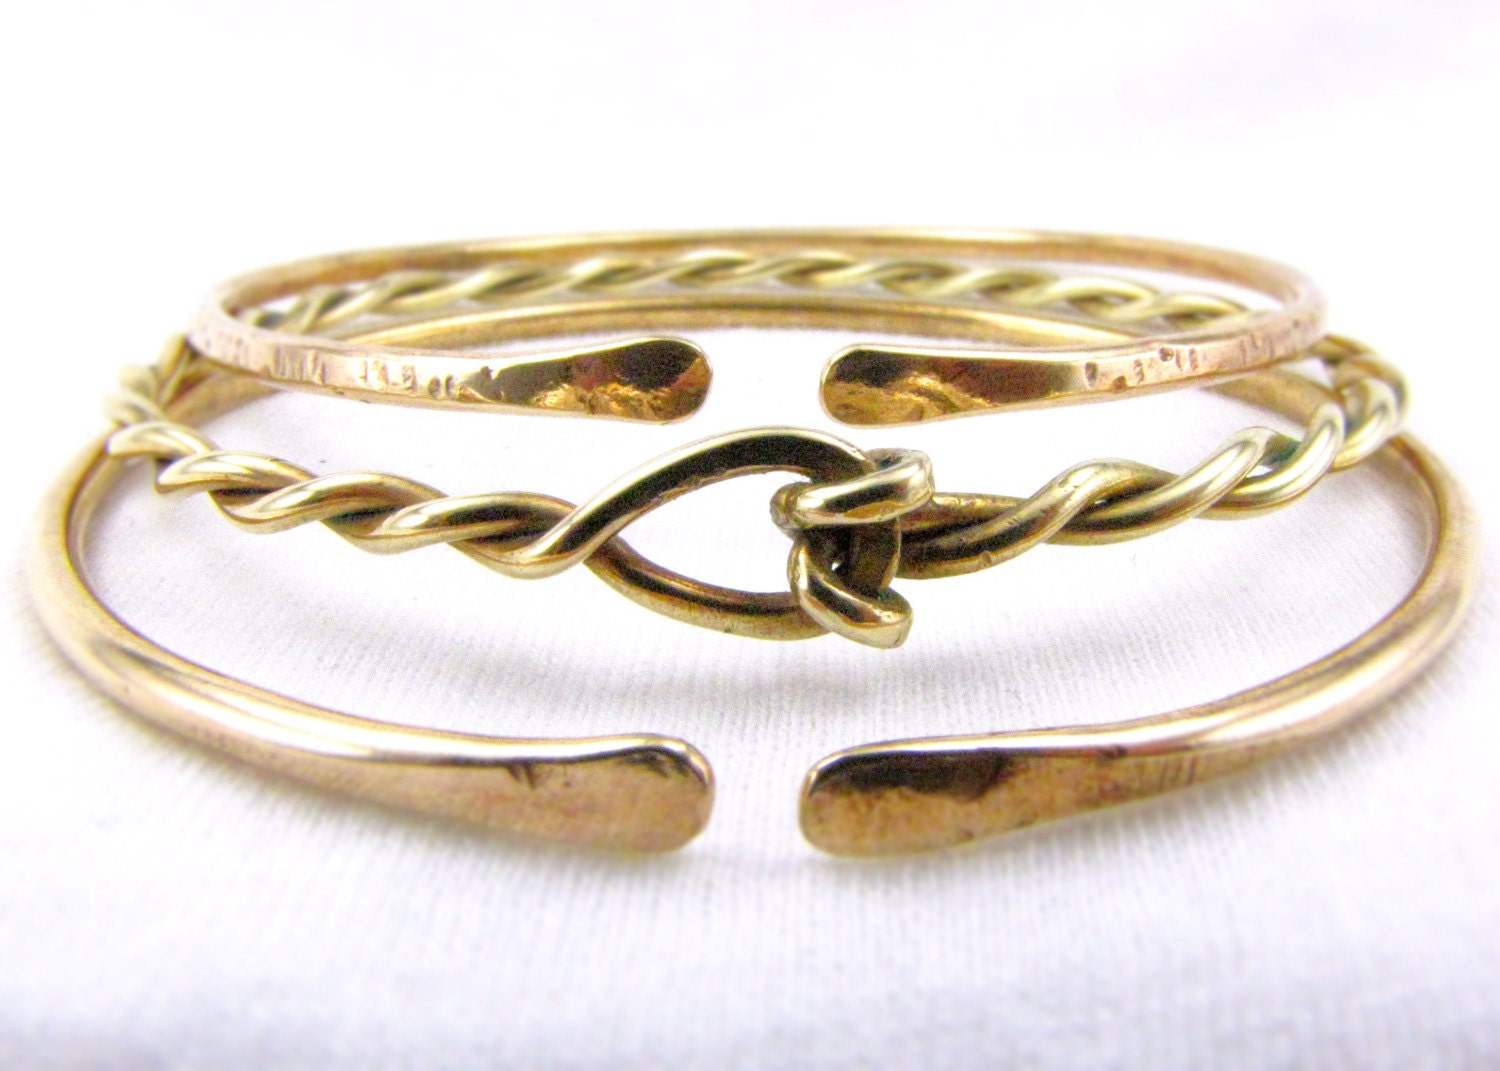 StAcKinG BaNgLe SeT: Stackable Bracelets Stacking by Cuprum29